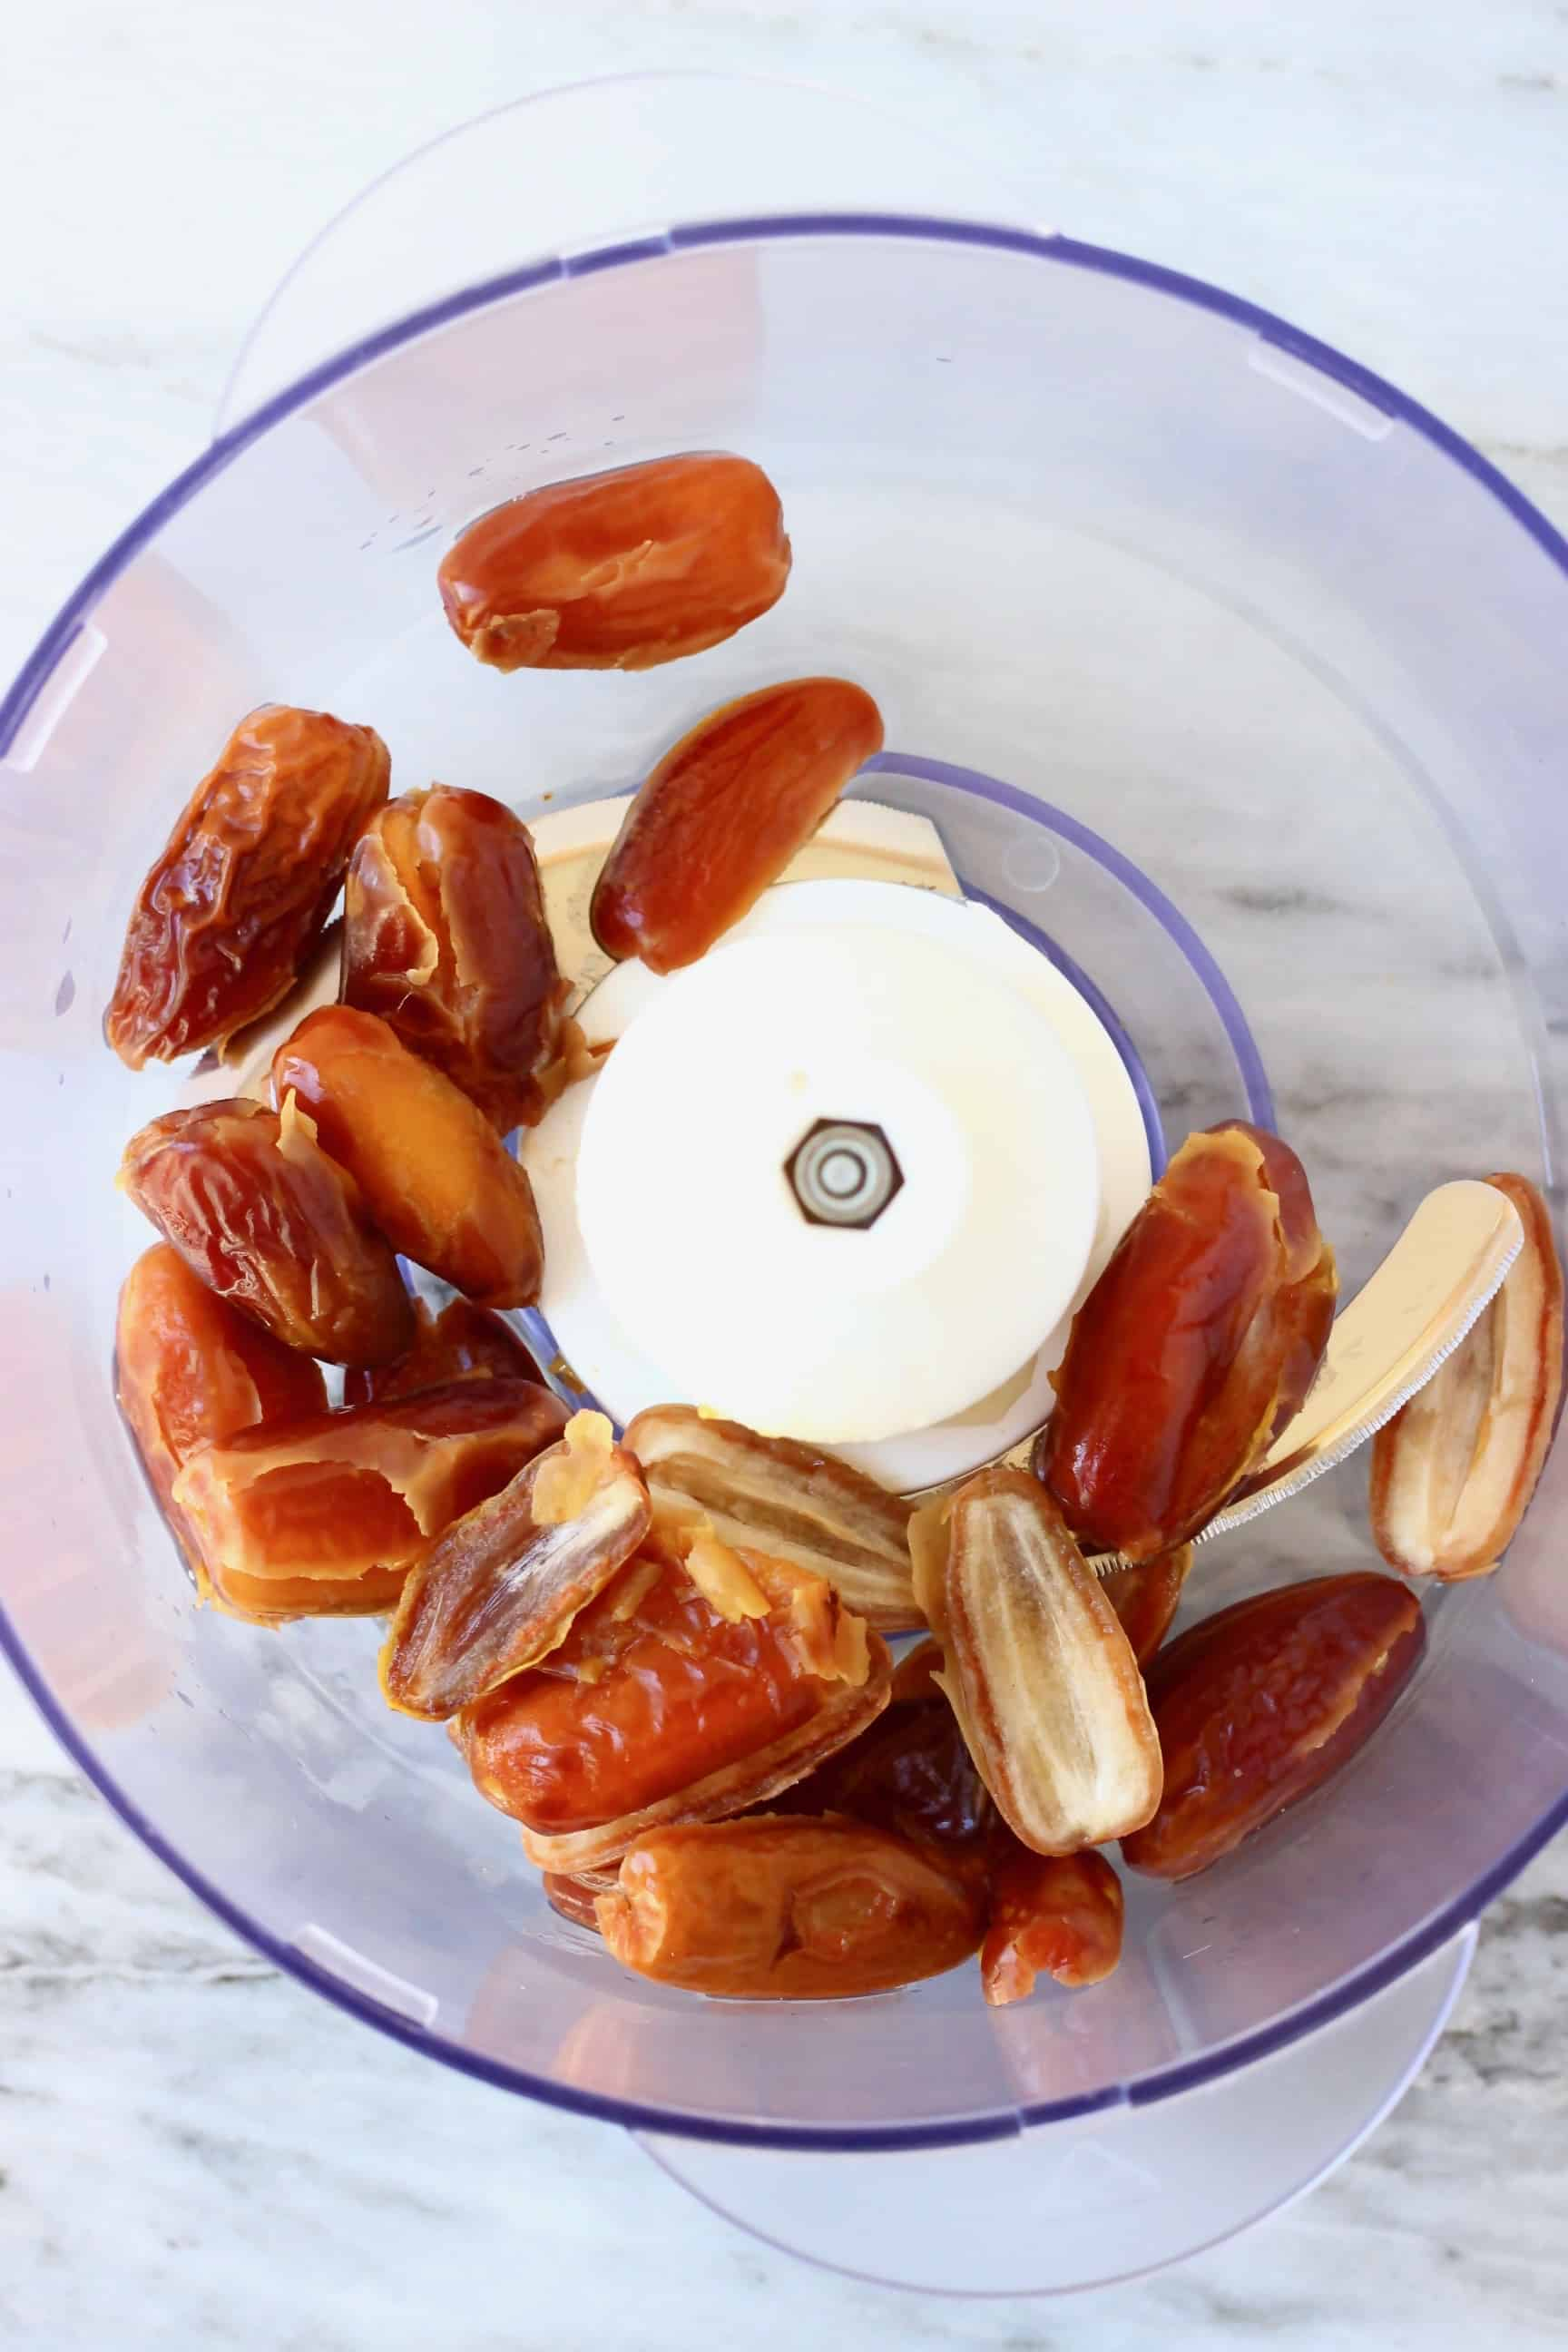 Dates in a food processor against a marble background